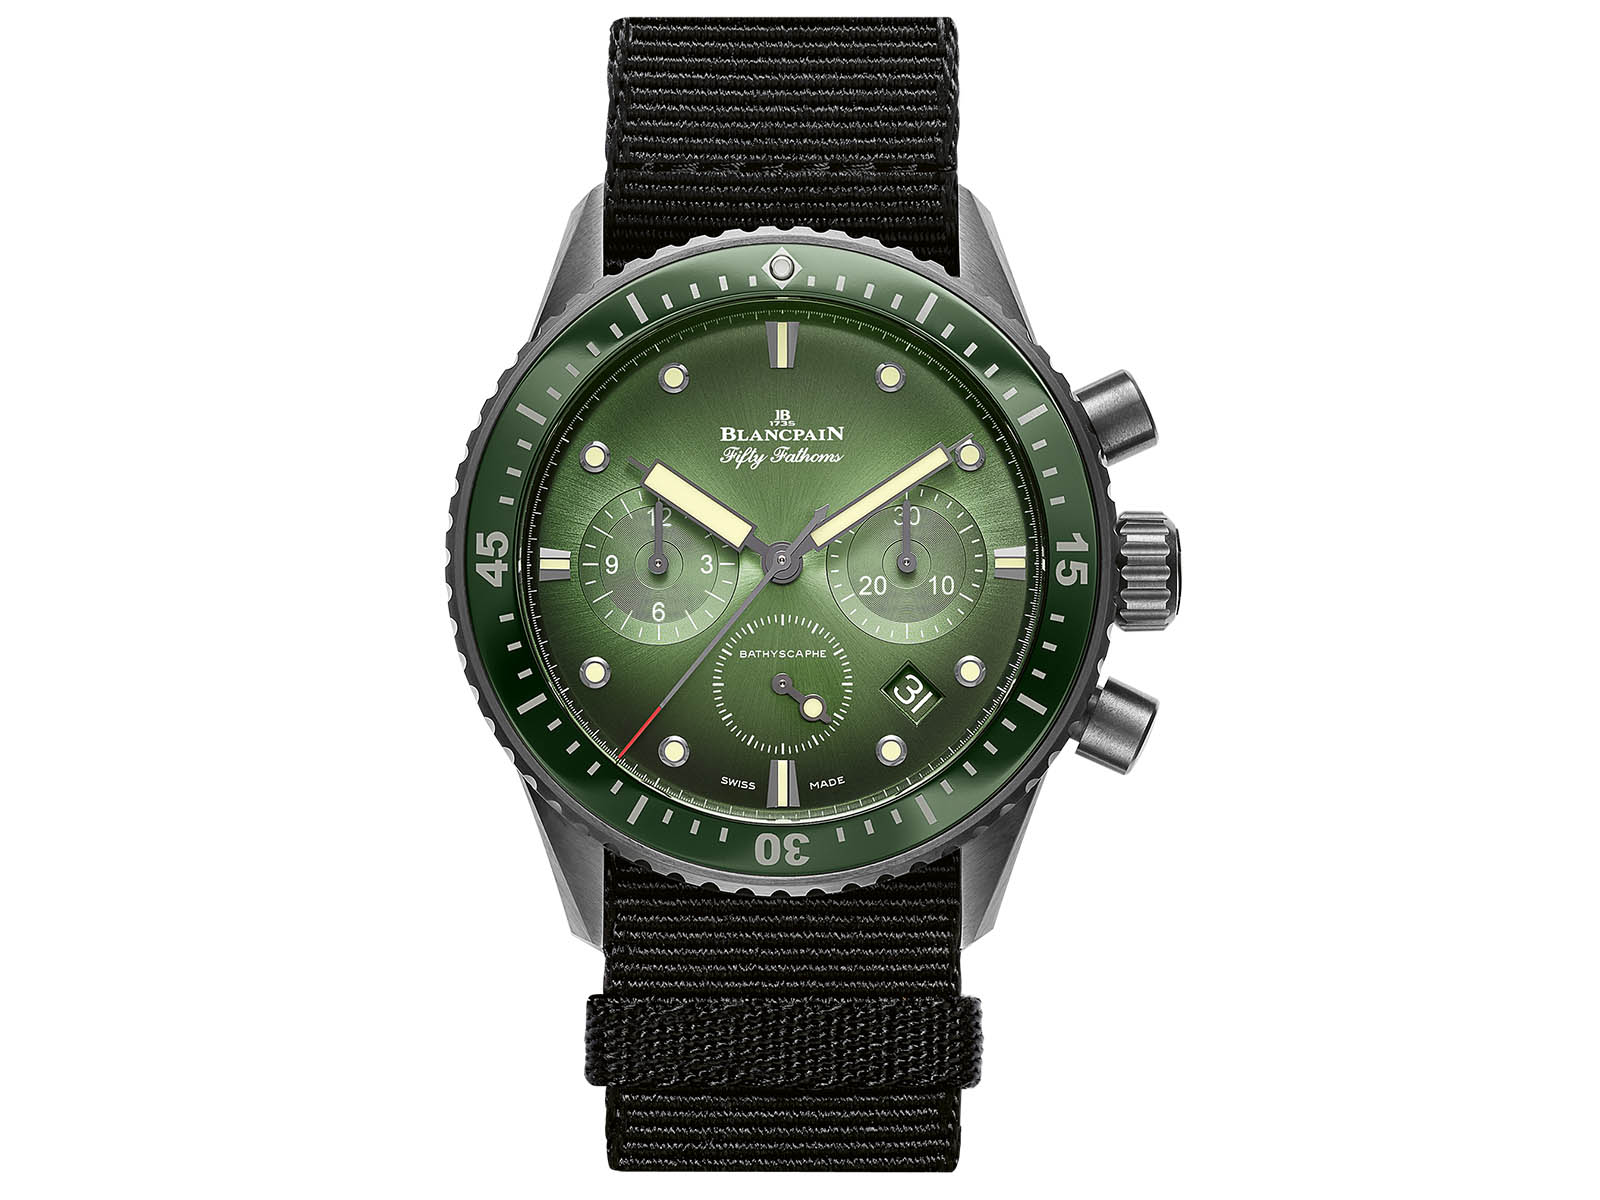 5200-0153-naba-blancpain-fifty-fathoms-bathyscaphe-chronograph-flyback-green-1.jpg